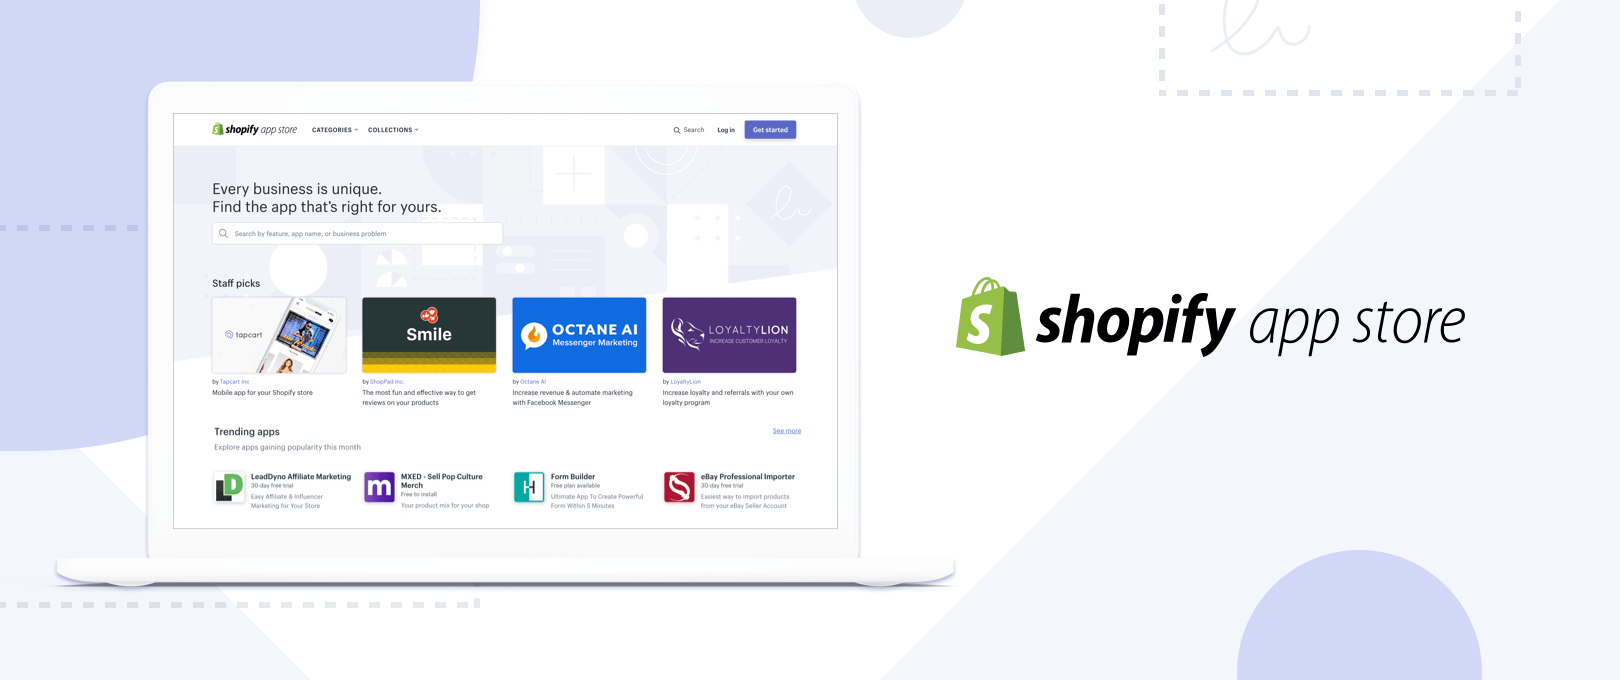 The all-new Shopify App Store helps you find the right apps for your business